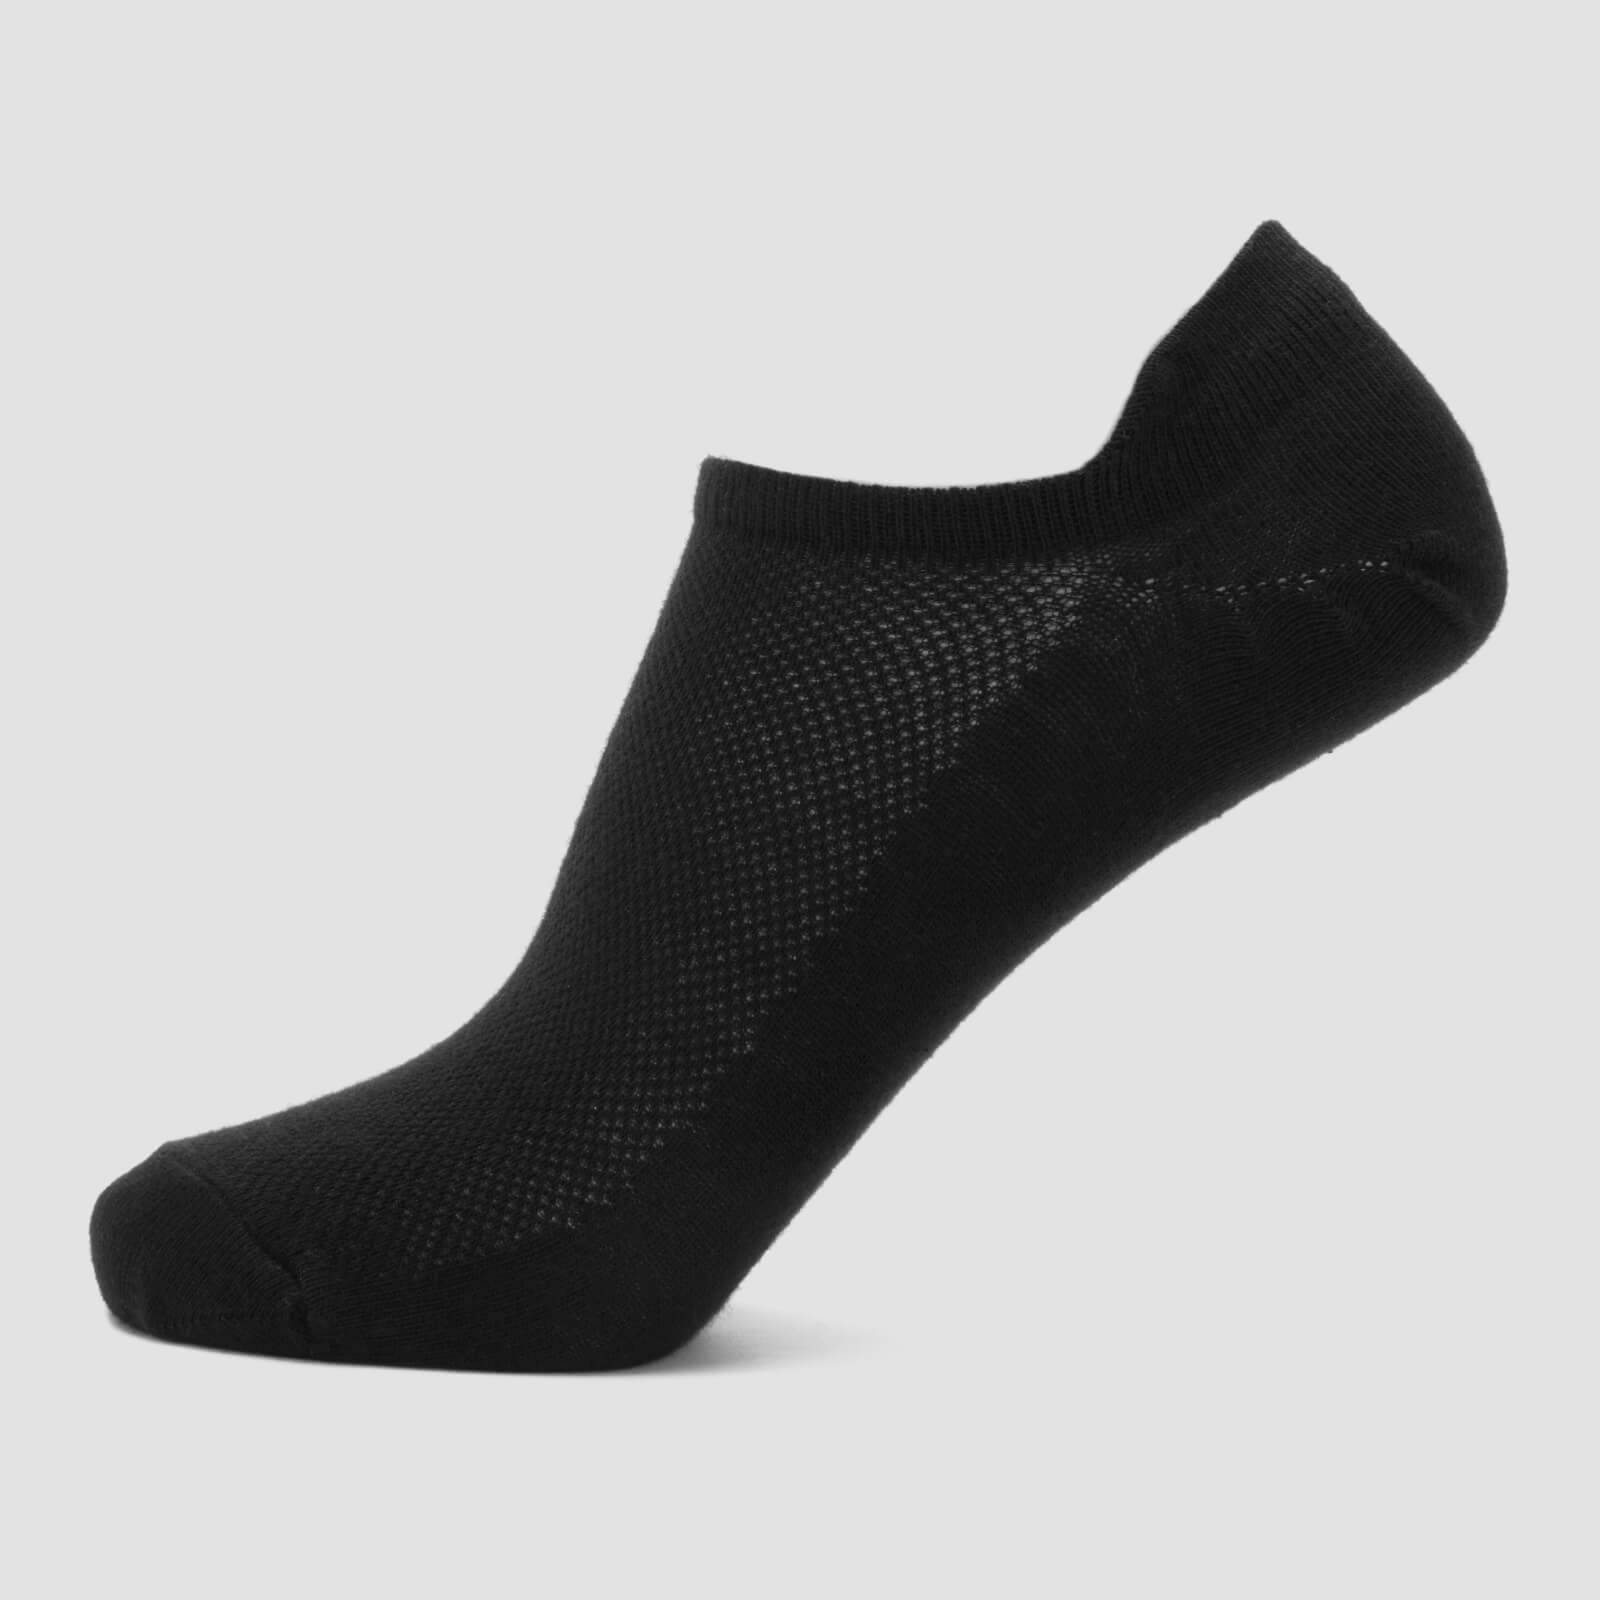 Myprotein MP Essentials Women's Ankle Socks - Black (3 Pack) - UK 7-9